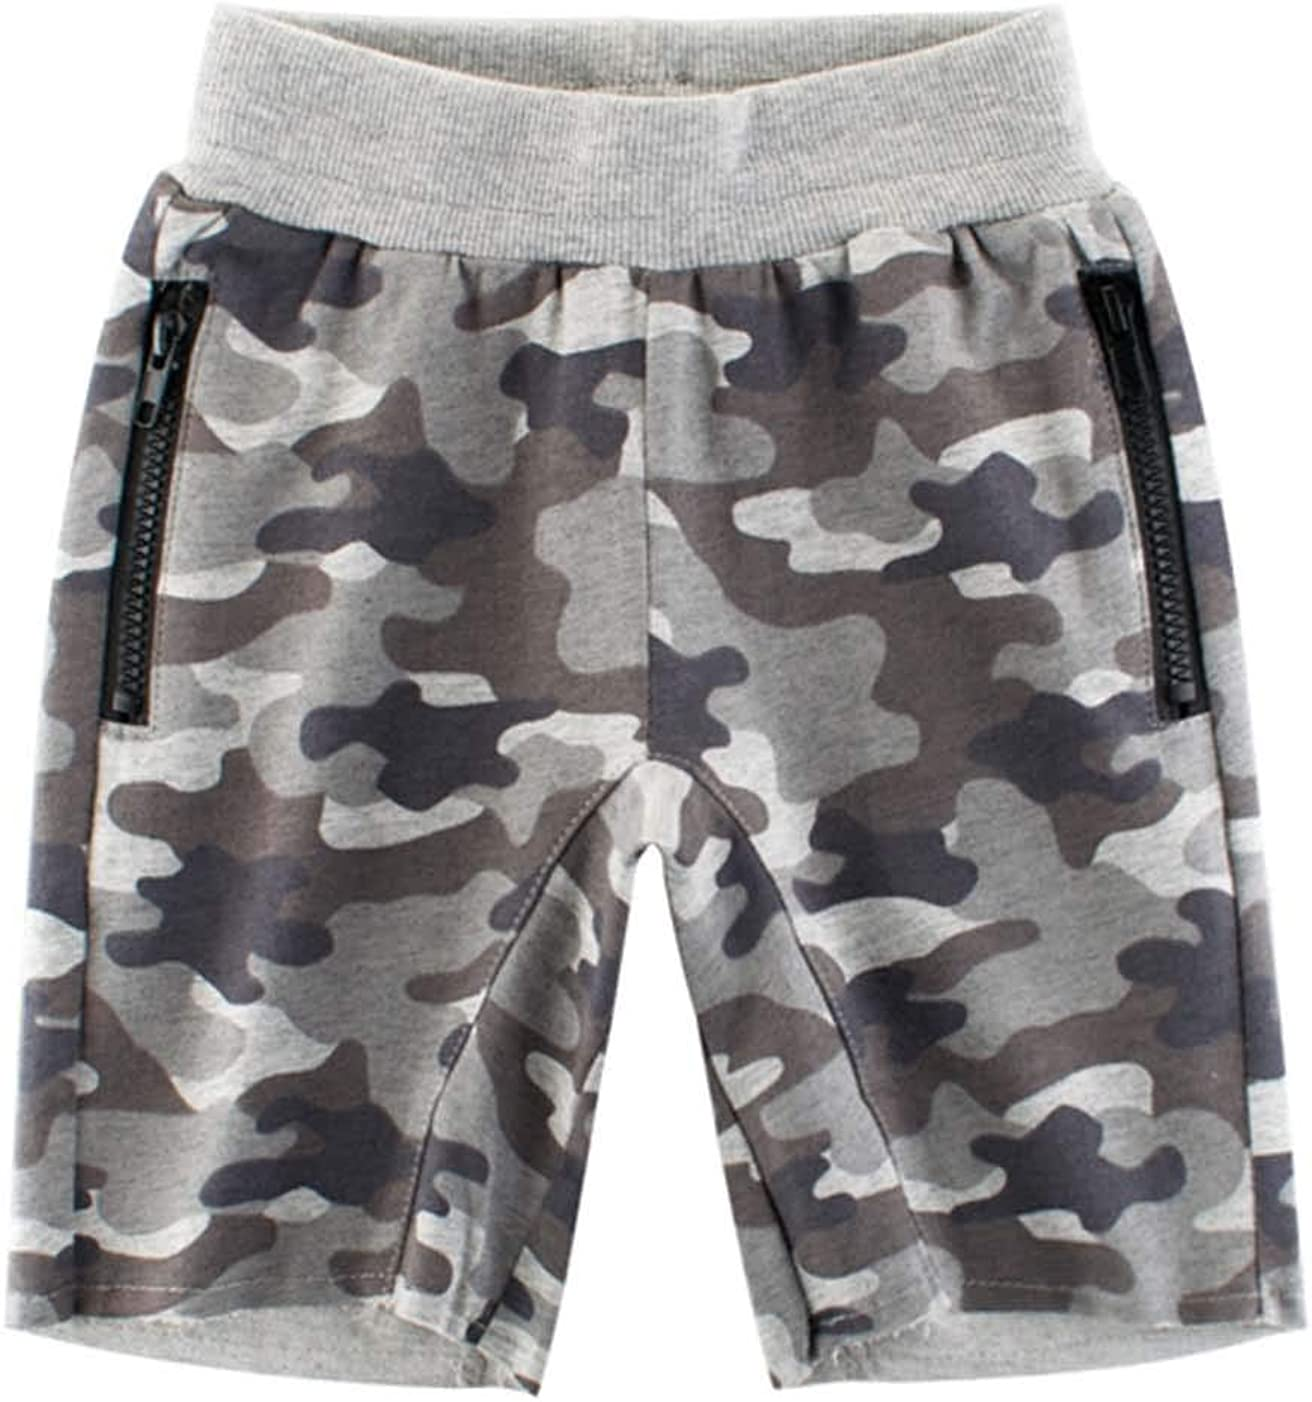 Askong Boys Sport Lounge Elastic Waistband Shorts Pant with Pocket for 1-10 Years